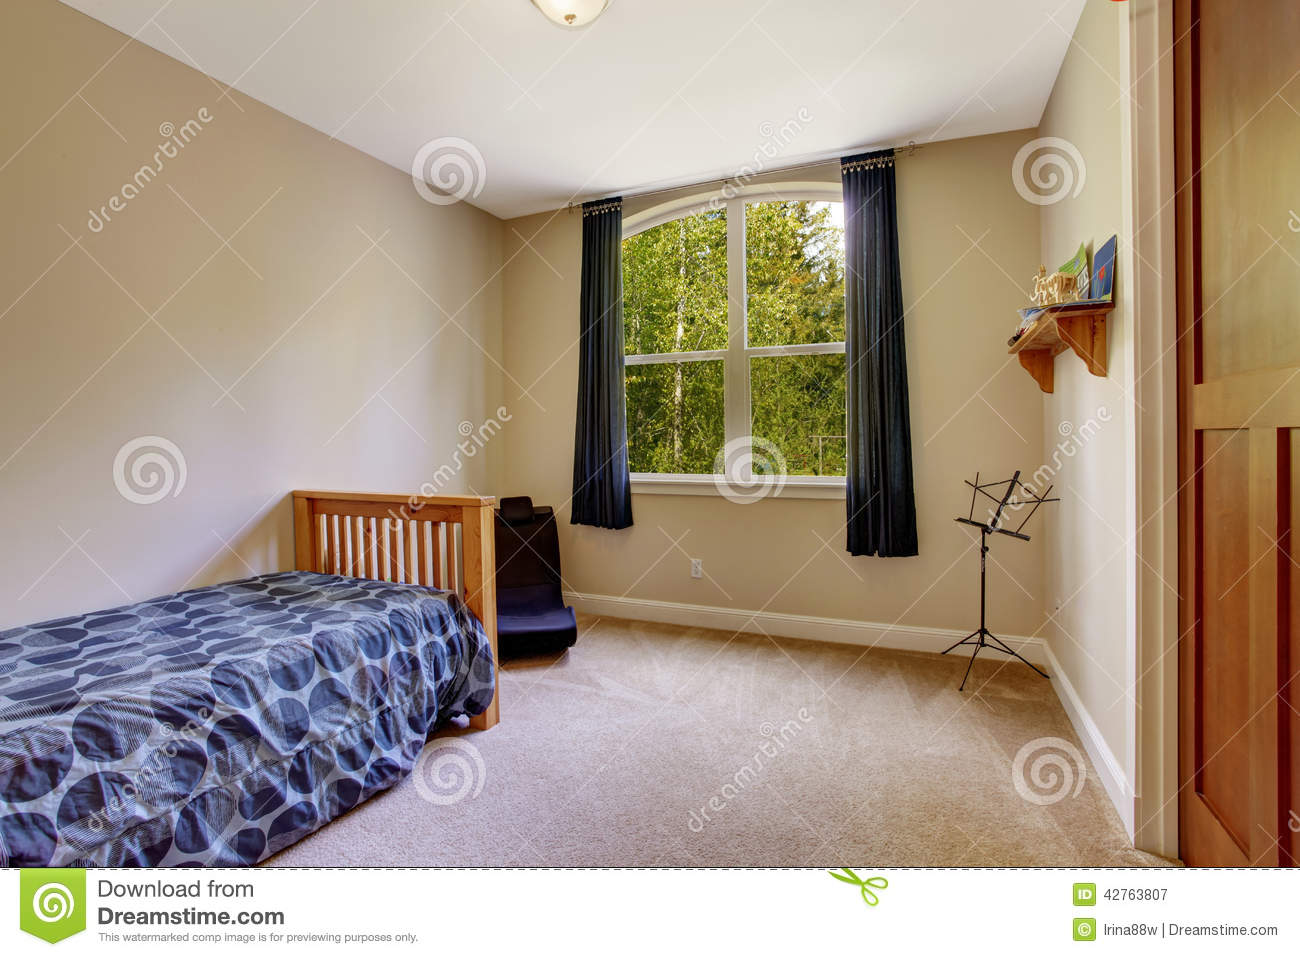 Small Bedroom With Single Bed Stock Photo Image 42763807